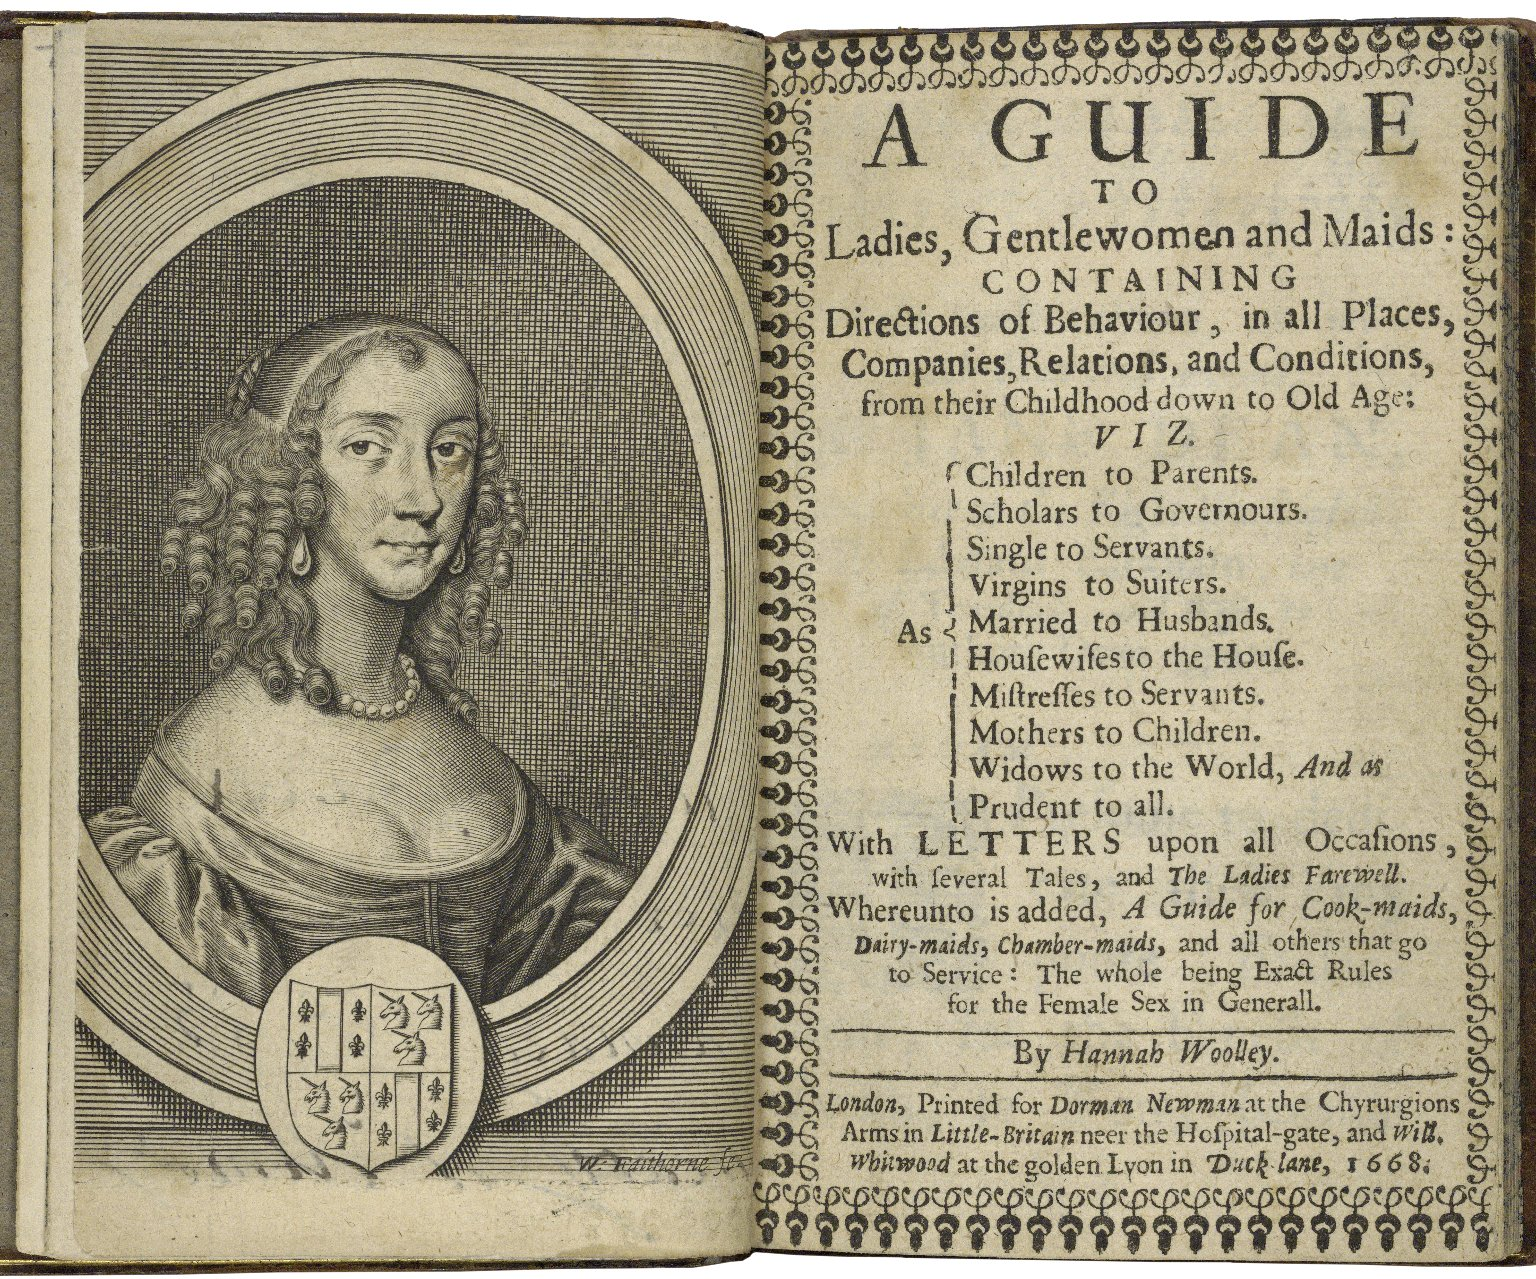 A guide to ladies, gentlewomen and maids: containing directions of behaviour, in all places, companies, relations, and conditions, from their childhood down to old age: viz. As children to parents. Scholars to governours. Single to servants. Virgins to suitors. Married to husbands. Huswifes to the house. Mistresses to servants. Mothers to children. Widows to the world, and as prudent to all. With letters and discourses upon all occasions, with several tales, and the ladies farewell. Whereunto is added, a guide for cook-maids, dairy-maids, chamber-maids, and all others that go to service: the whole being exact rules for the female sex in generall. By Hannah Woolley.